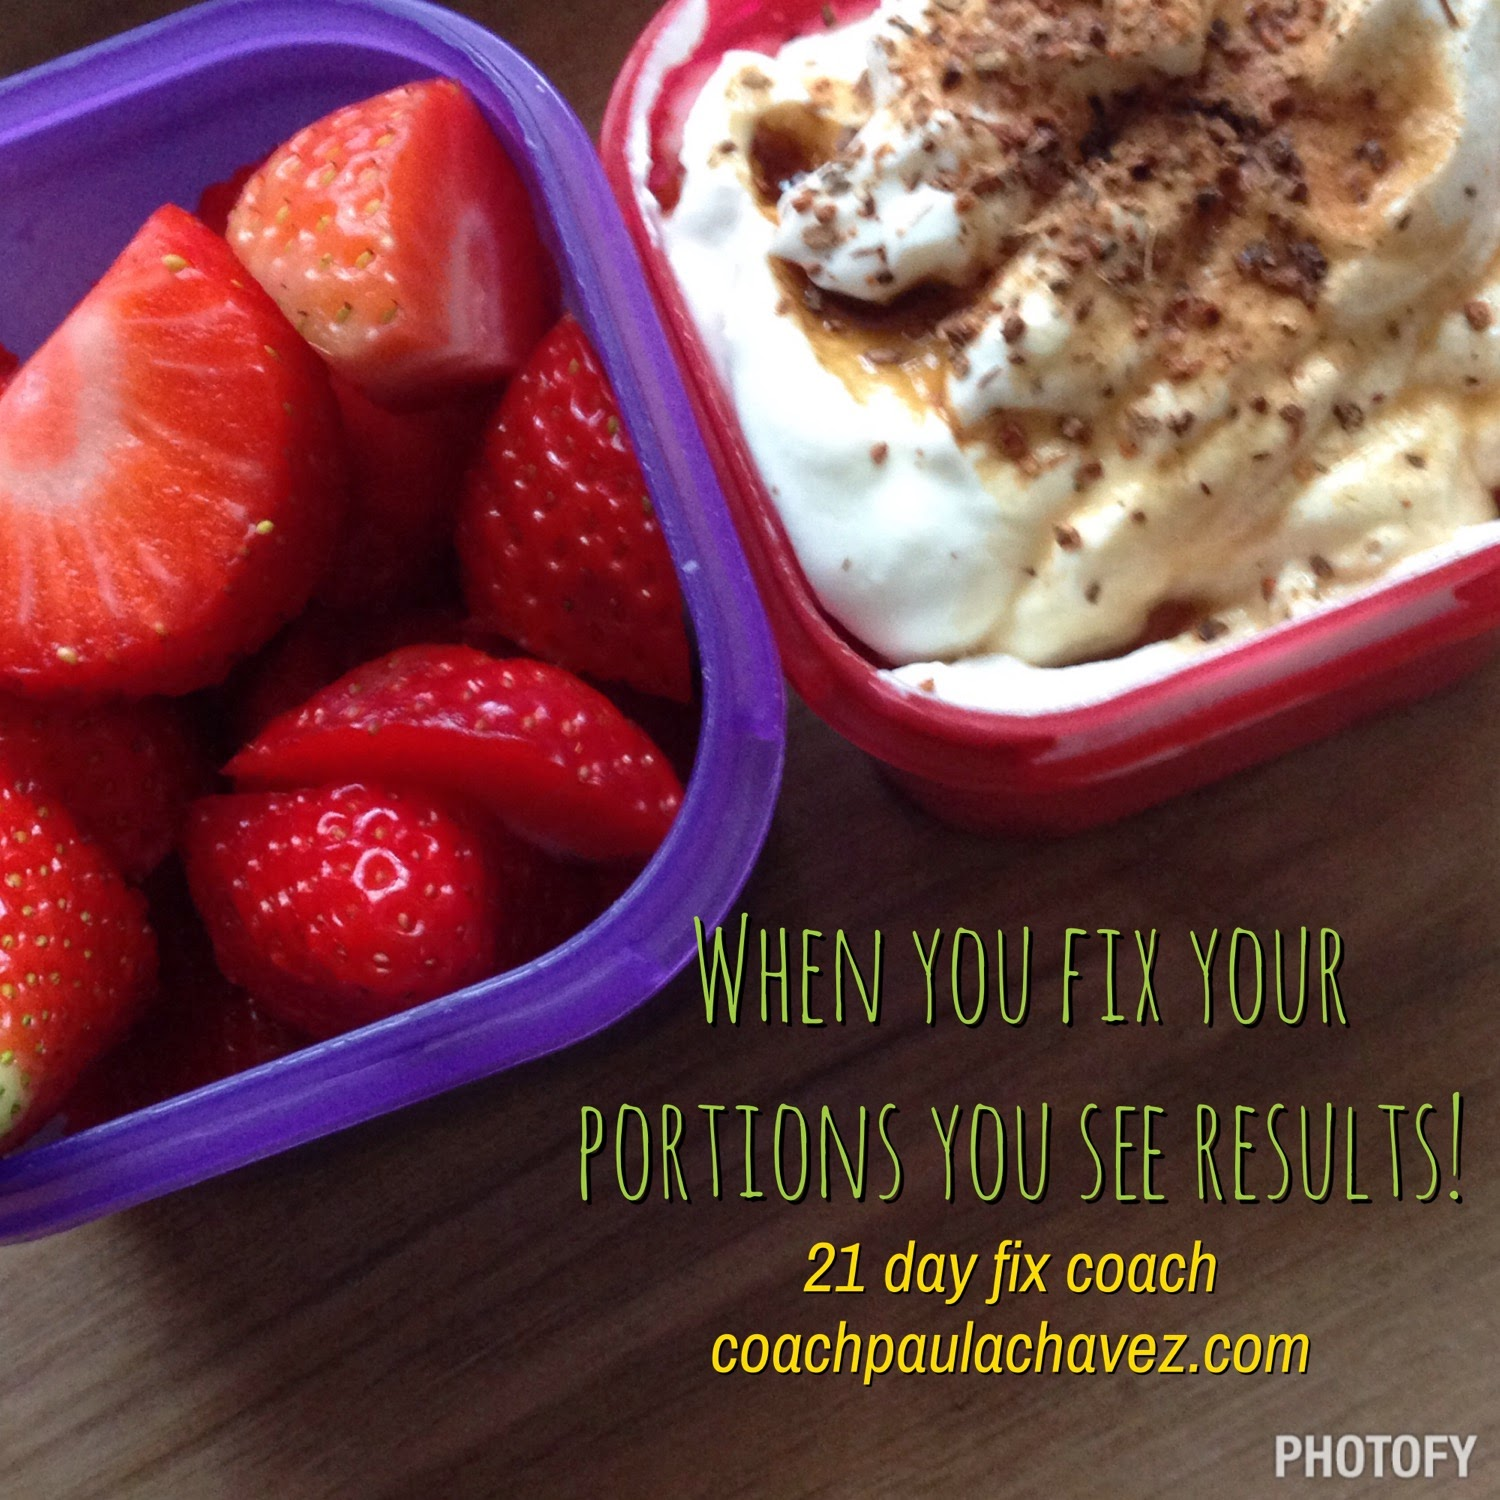 21 day fix, challange group, portion control, 21 day fix recipes,